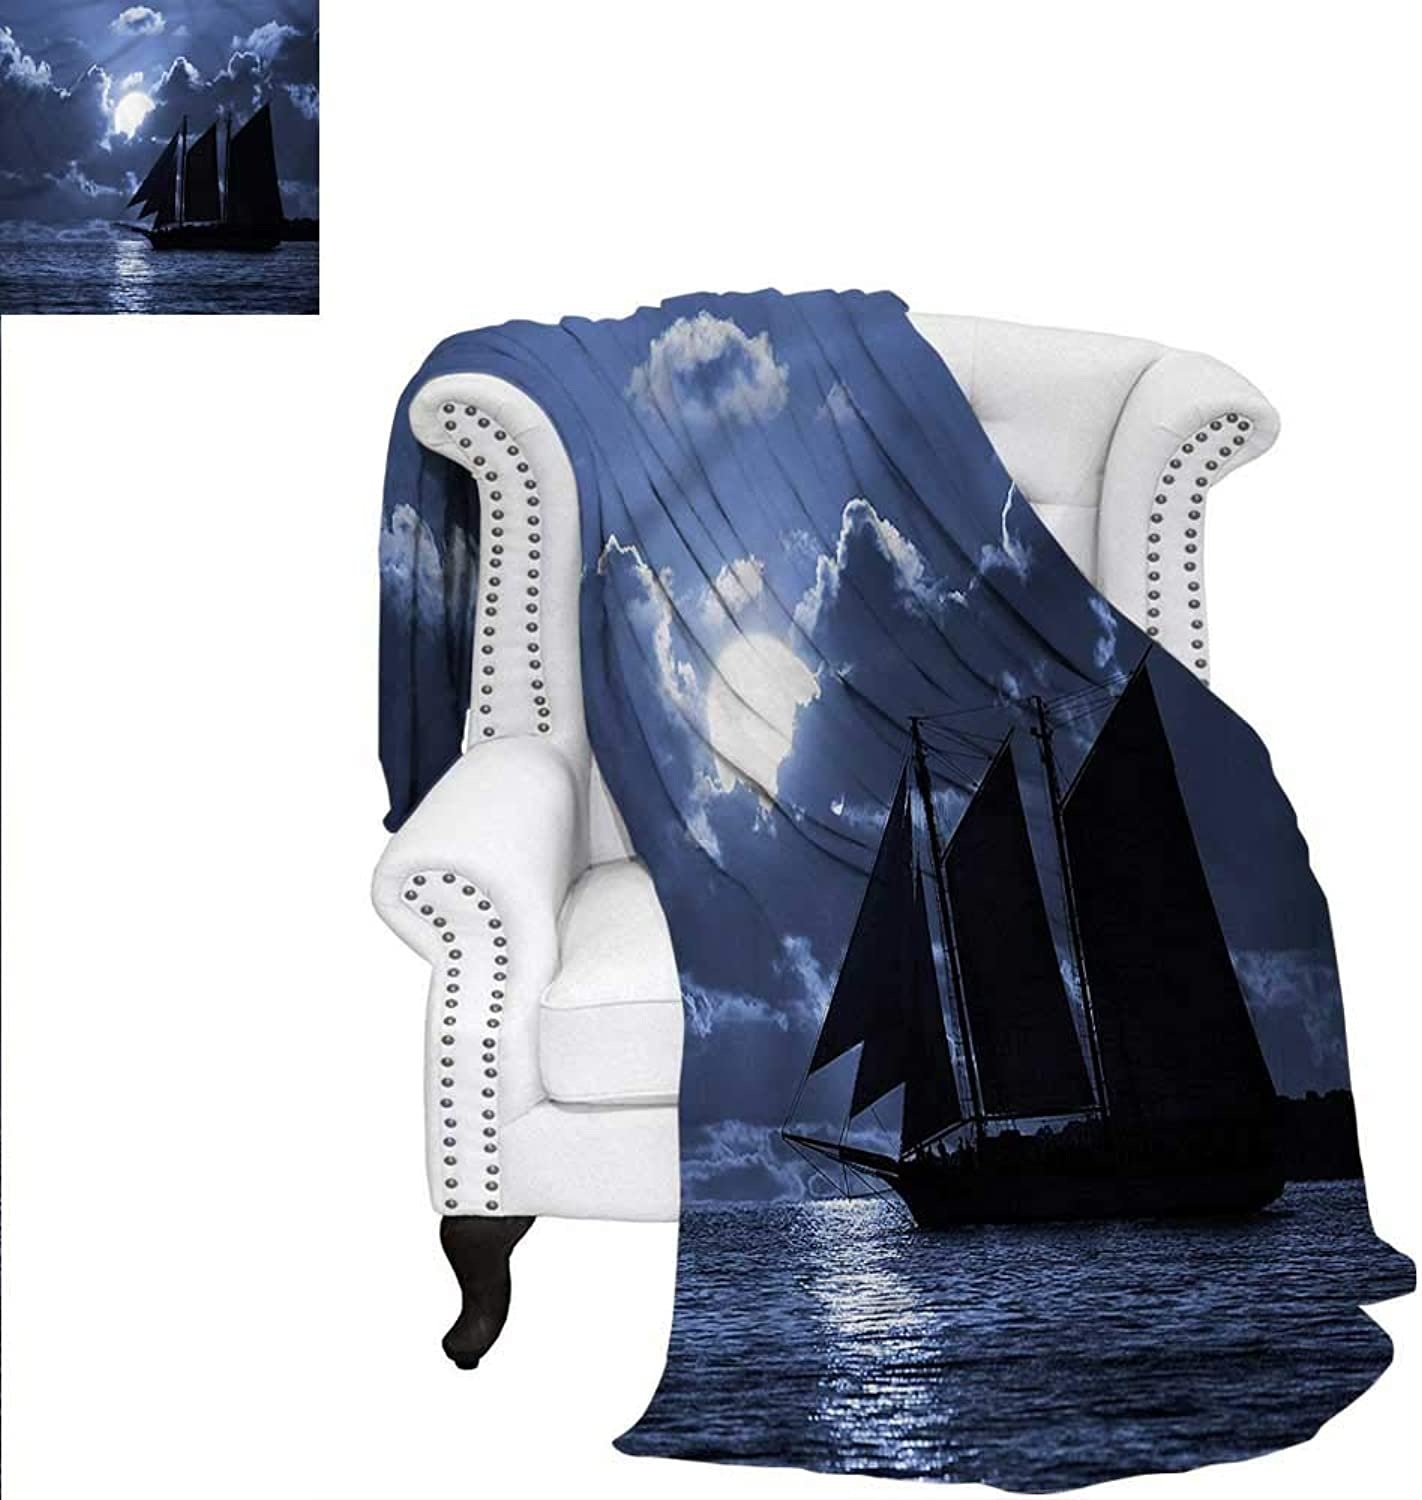 RenteriaDecor Pirate Blanket Sail Boat on Sea at Night Blanket 60 x50